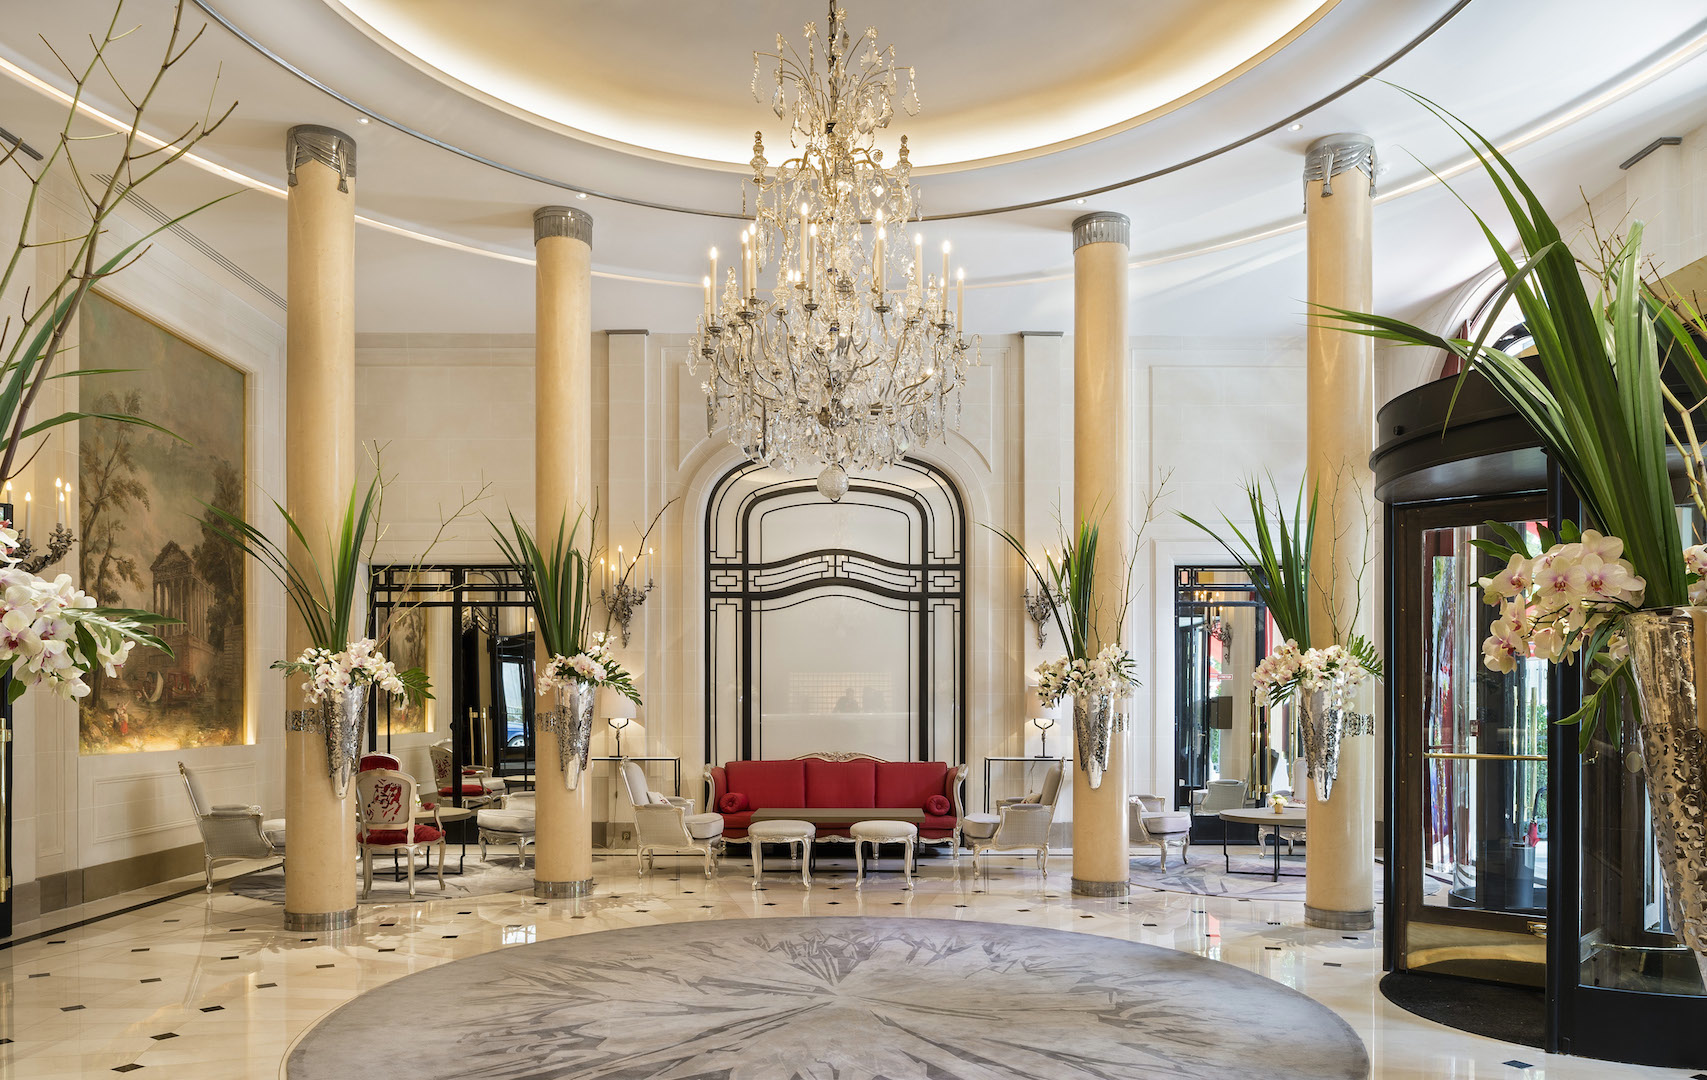 Plaza ath n e the most romantic hotel in parisfashionela for Top design hotels in paris